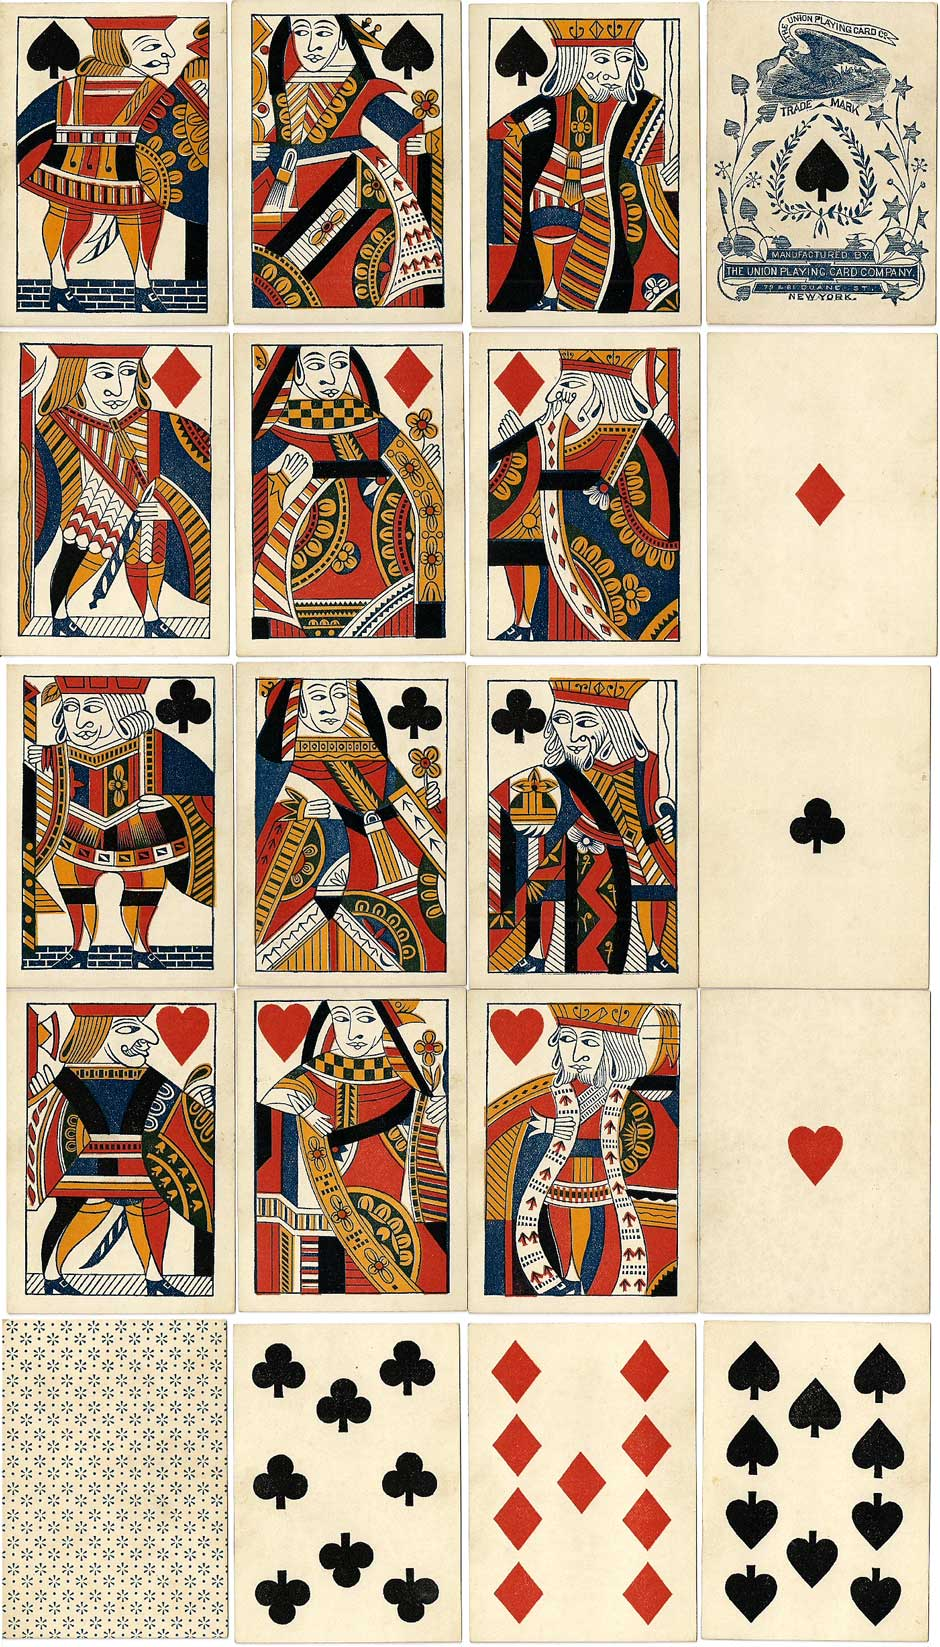 playing cards produced by the Union Playing Card Co., New York, c.1875